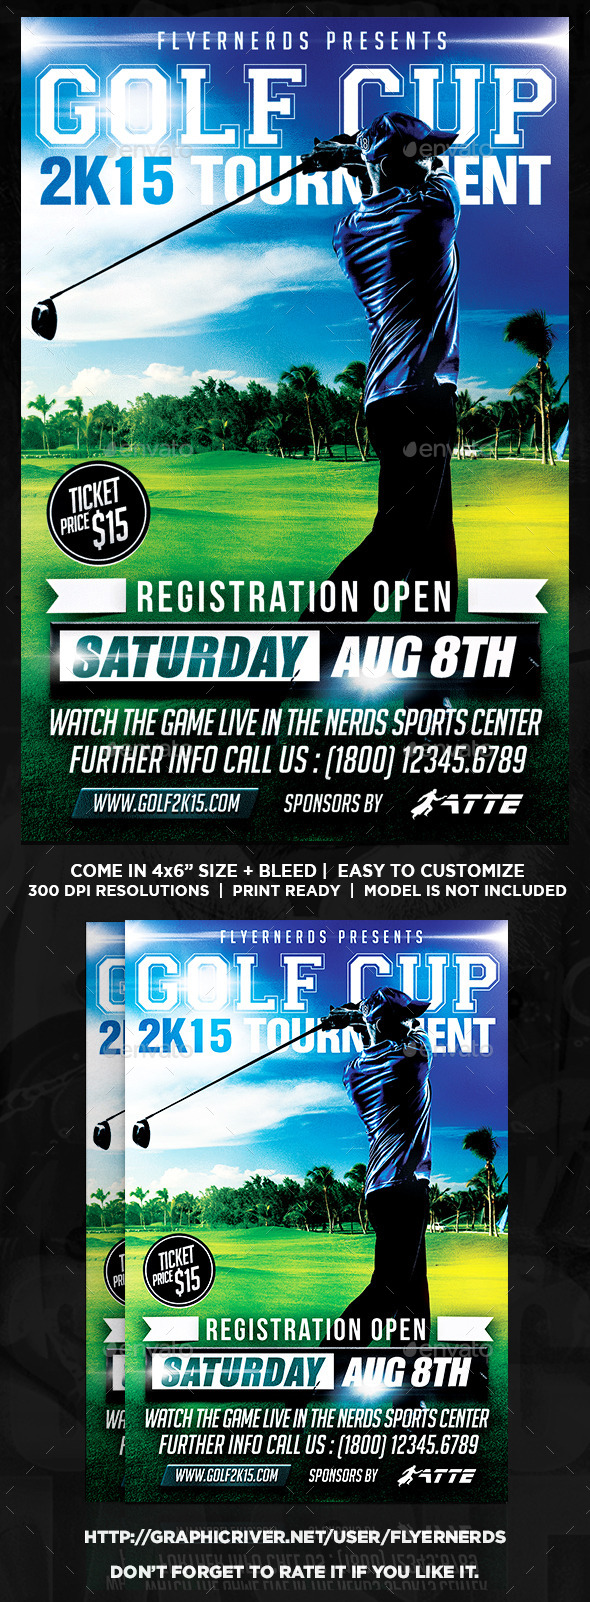 Golf Cup 2K15 Tournament Sports Flyer - Sports Events